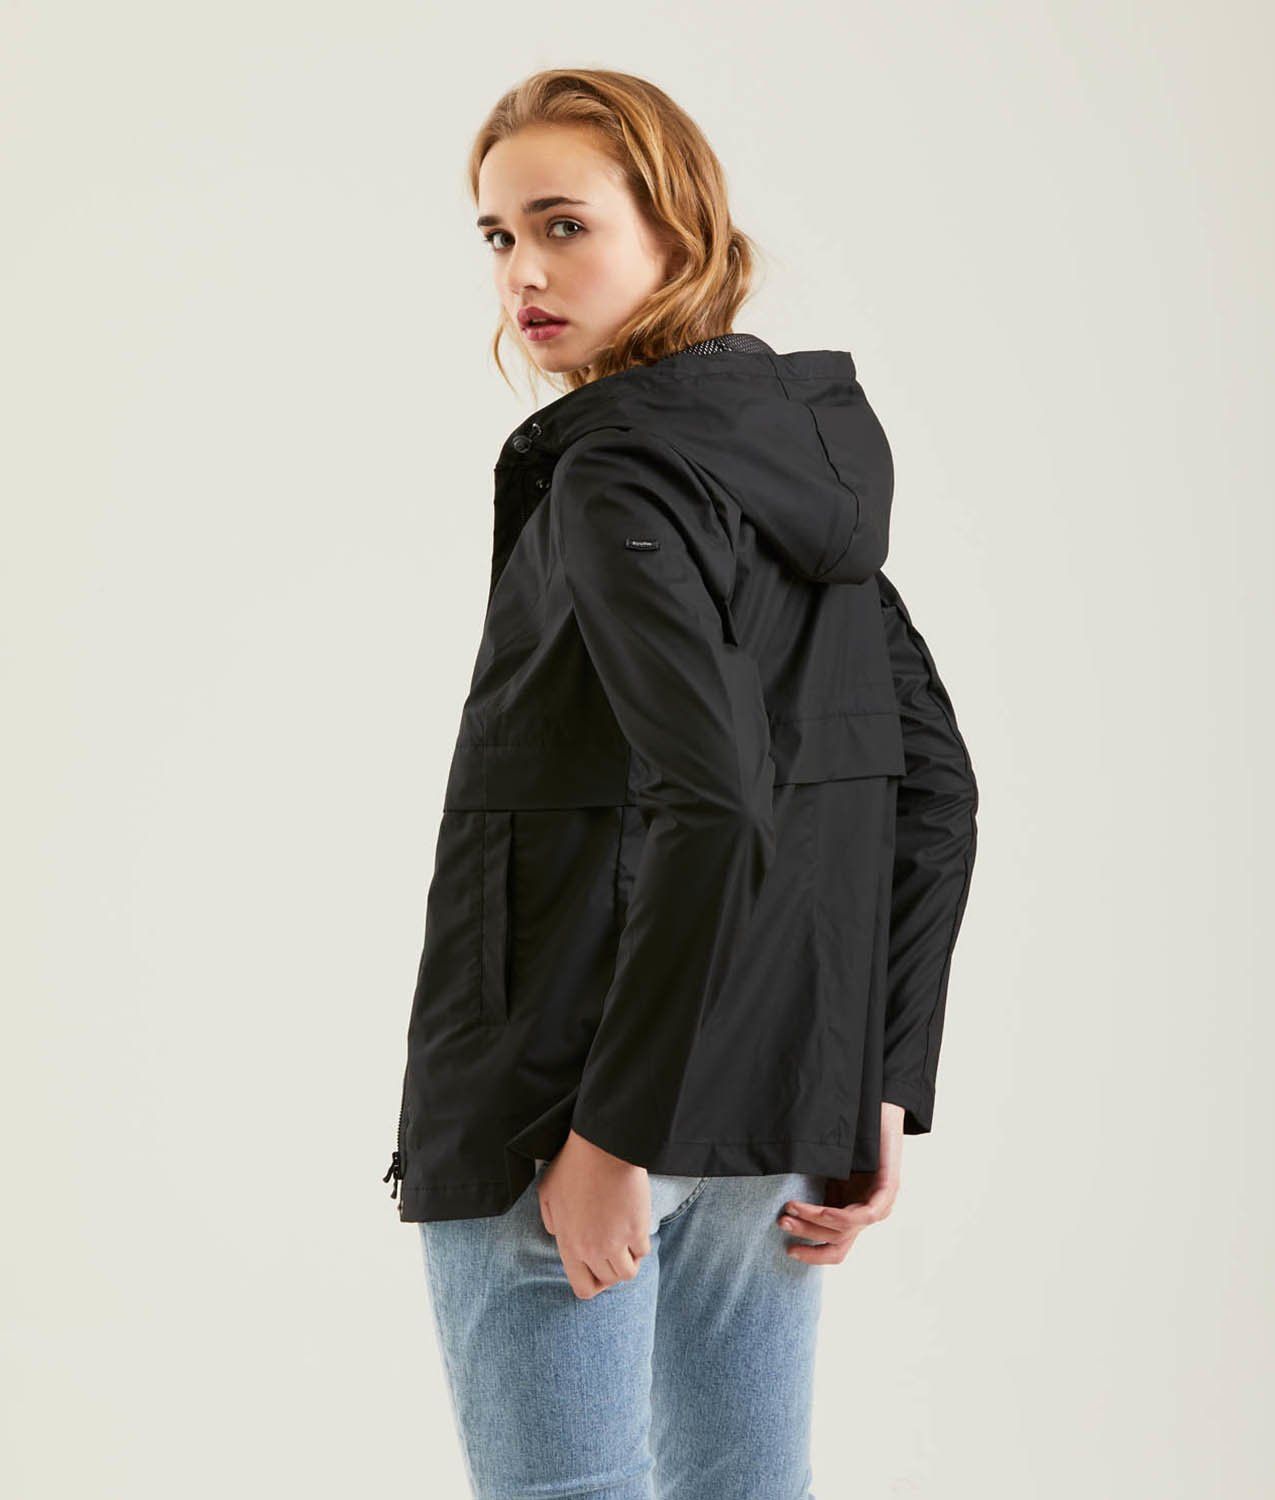 KELLY JACKET